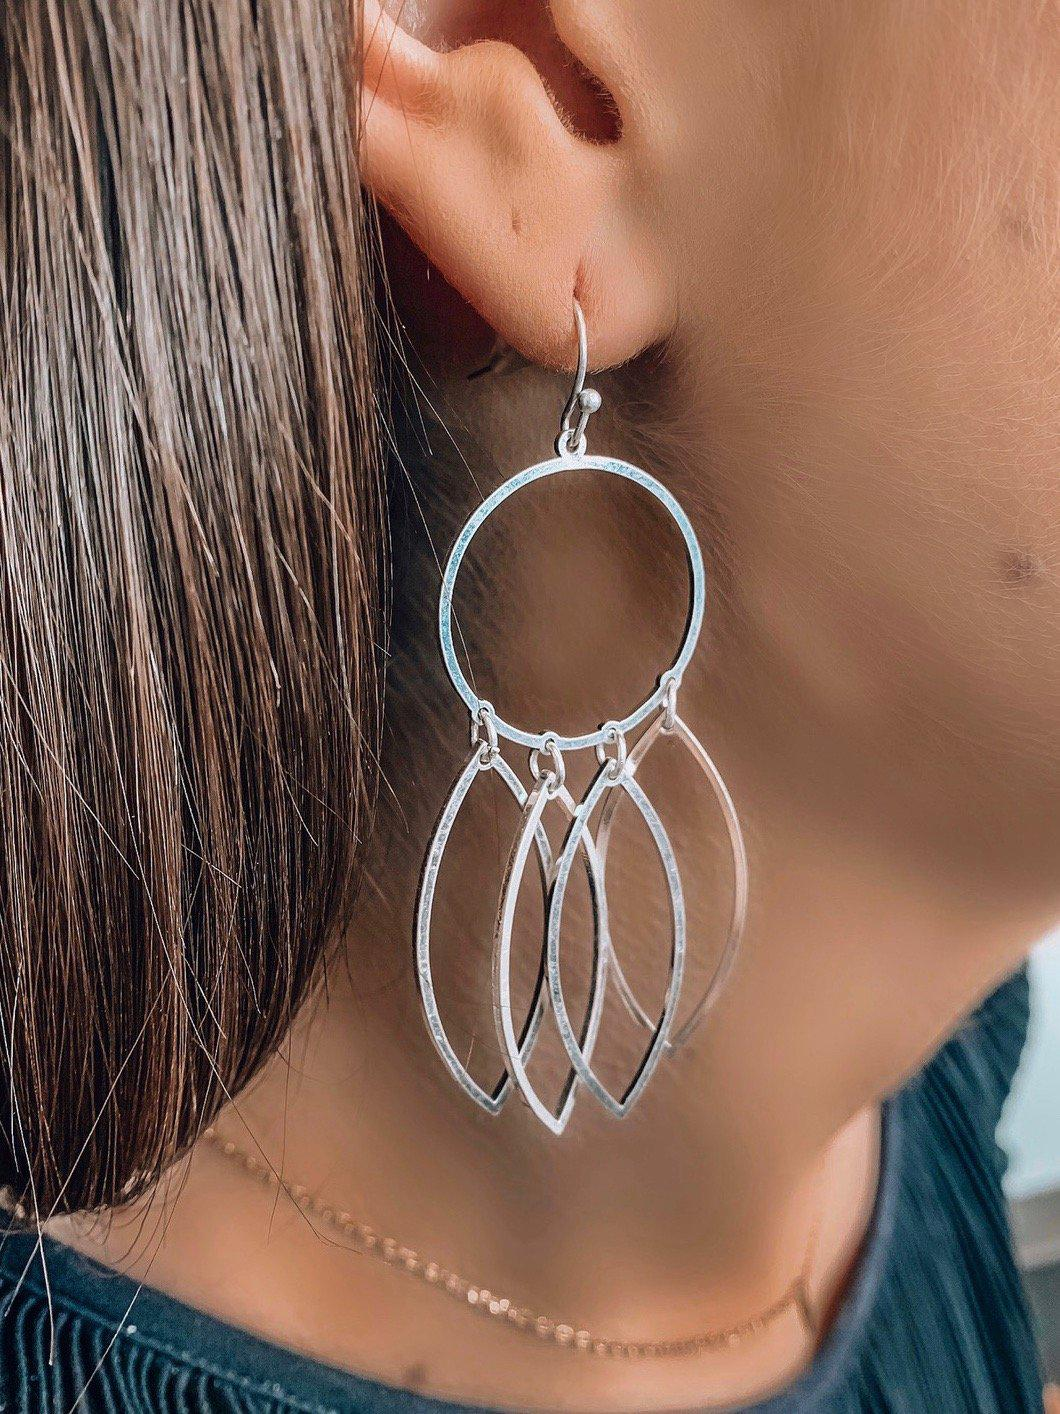 Time To Shine Earrings-Women's ACCESSORIES-New Arrivals-Runway Seven